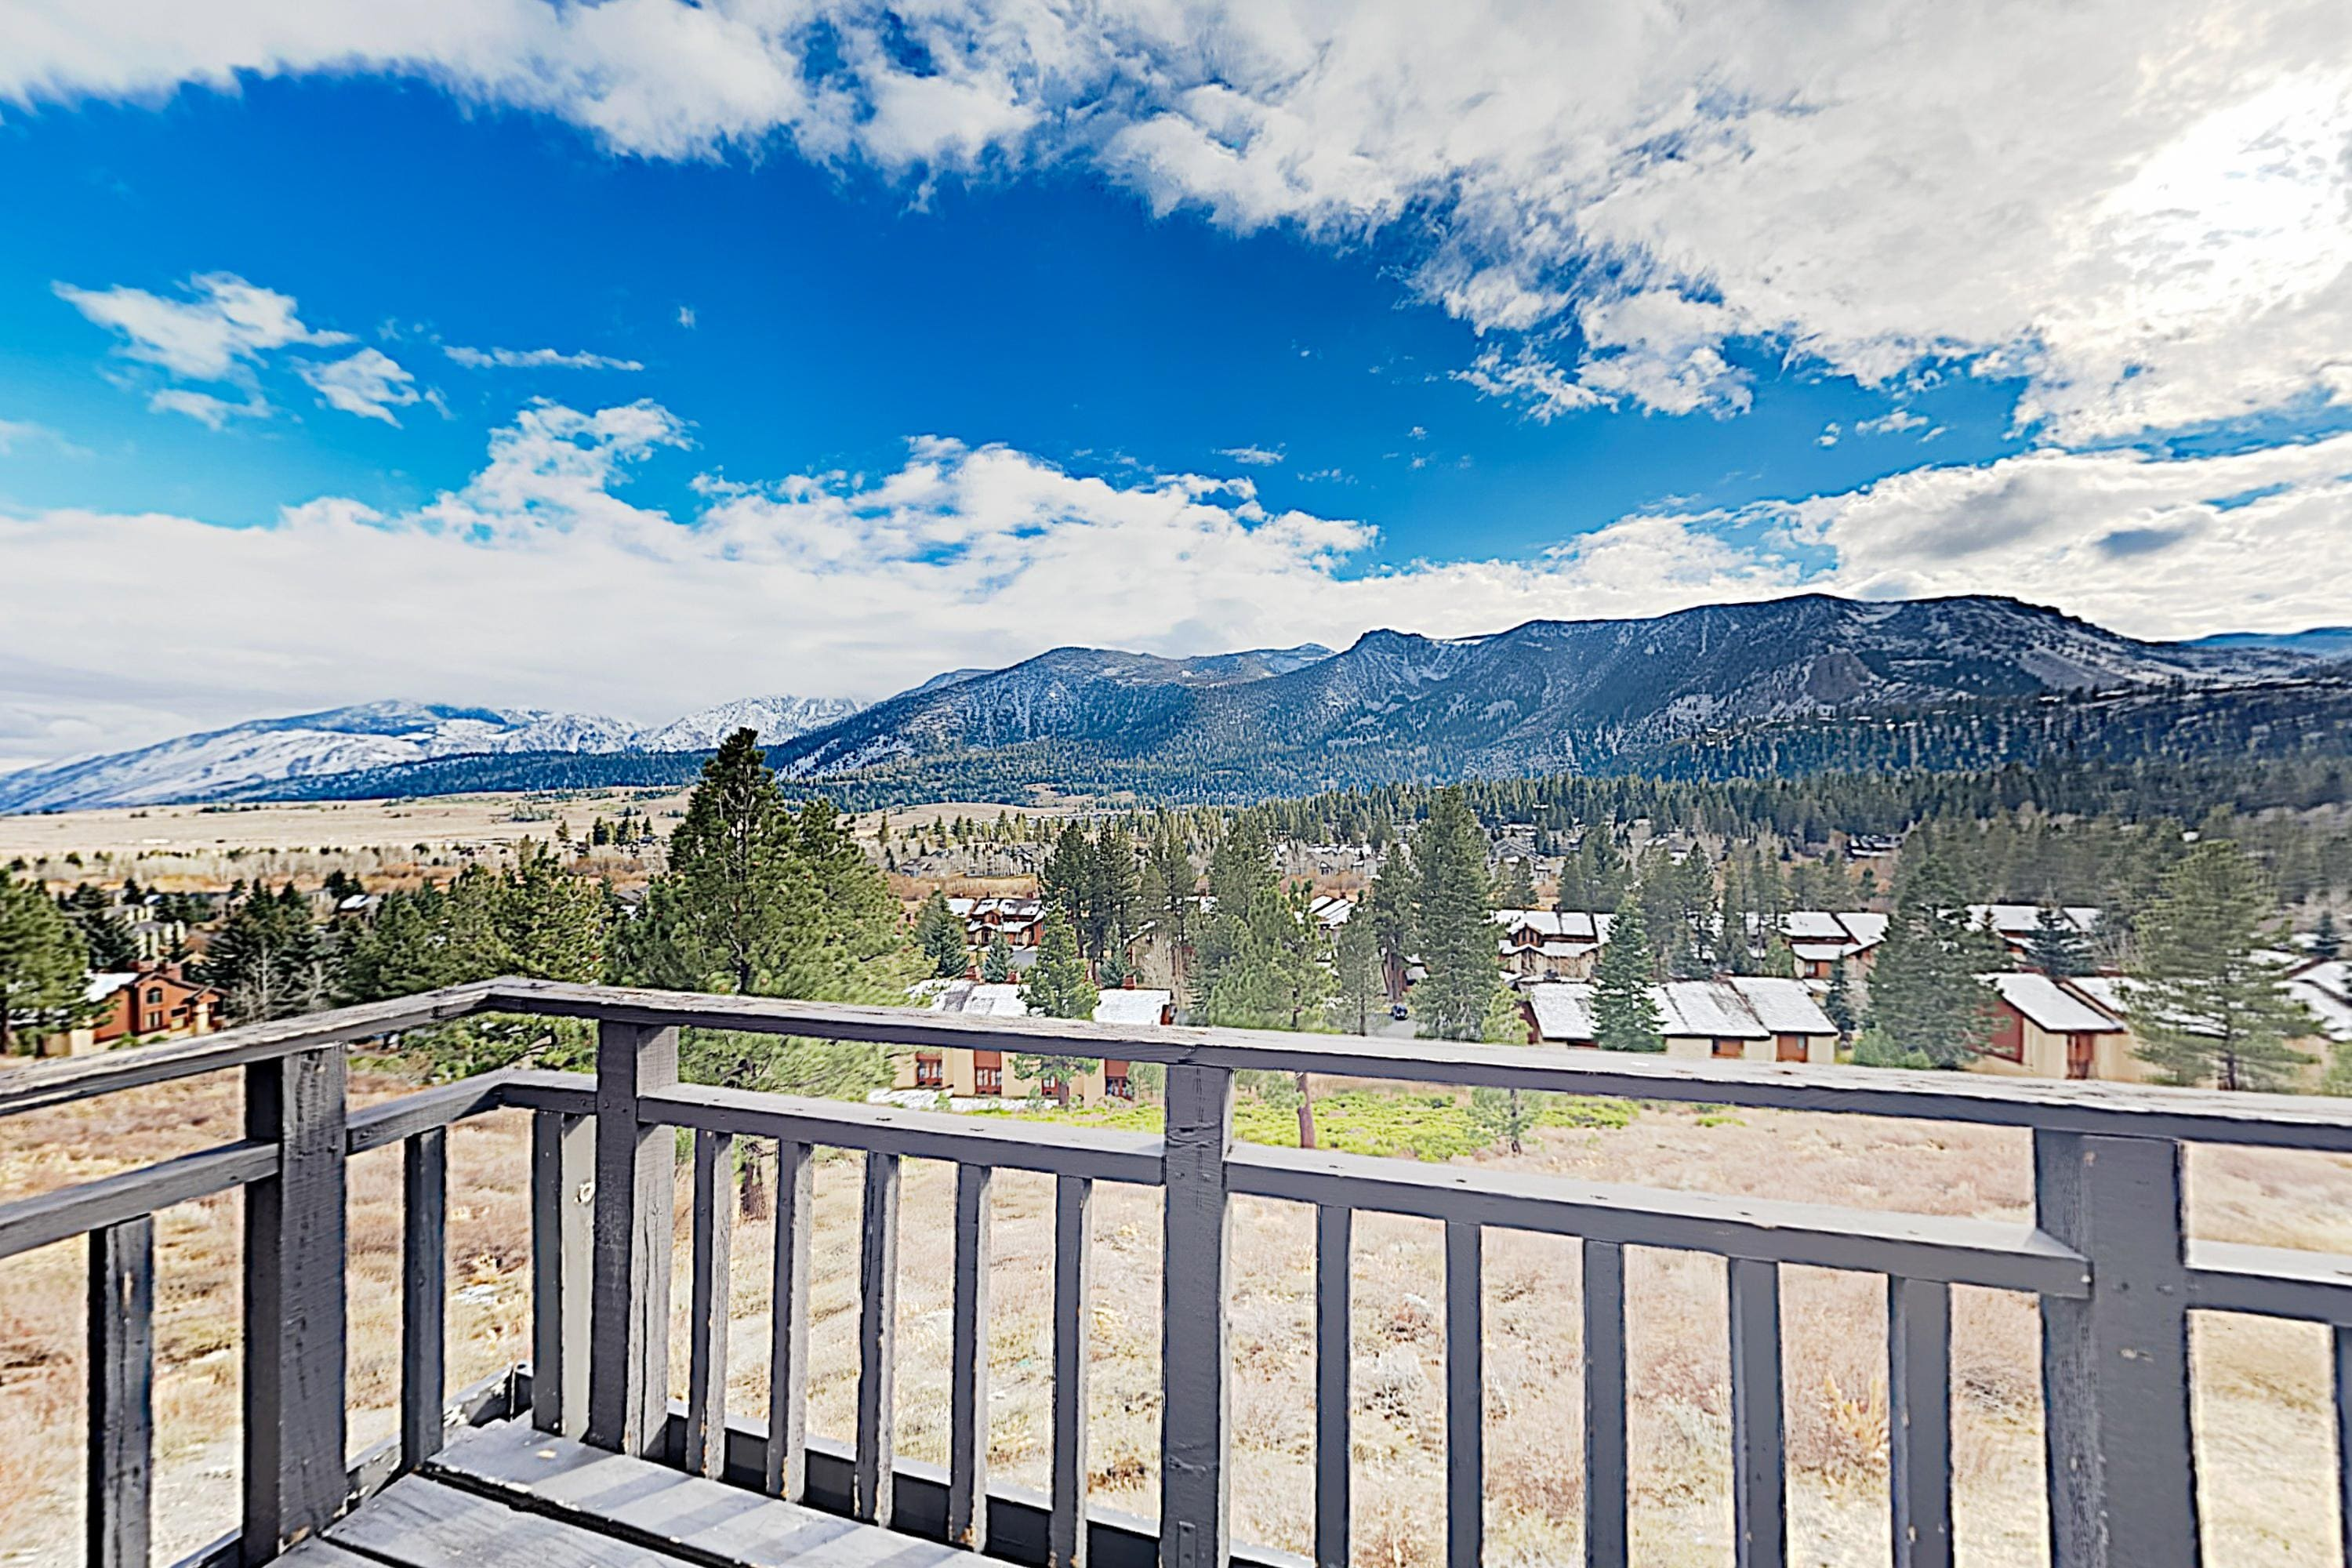 Admire sweeping views of the surrounding mountains from your private deck.